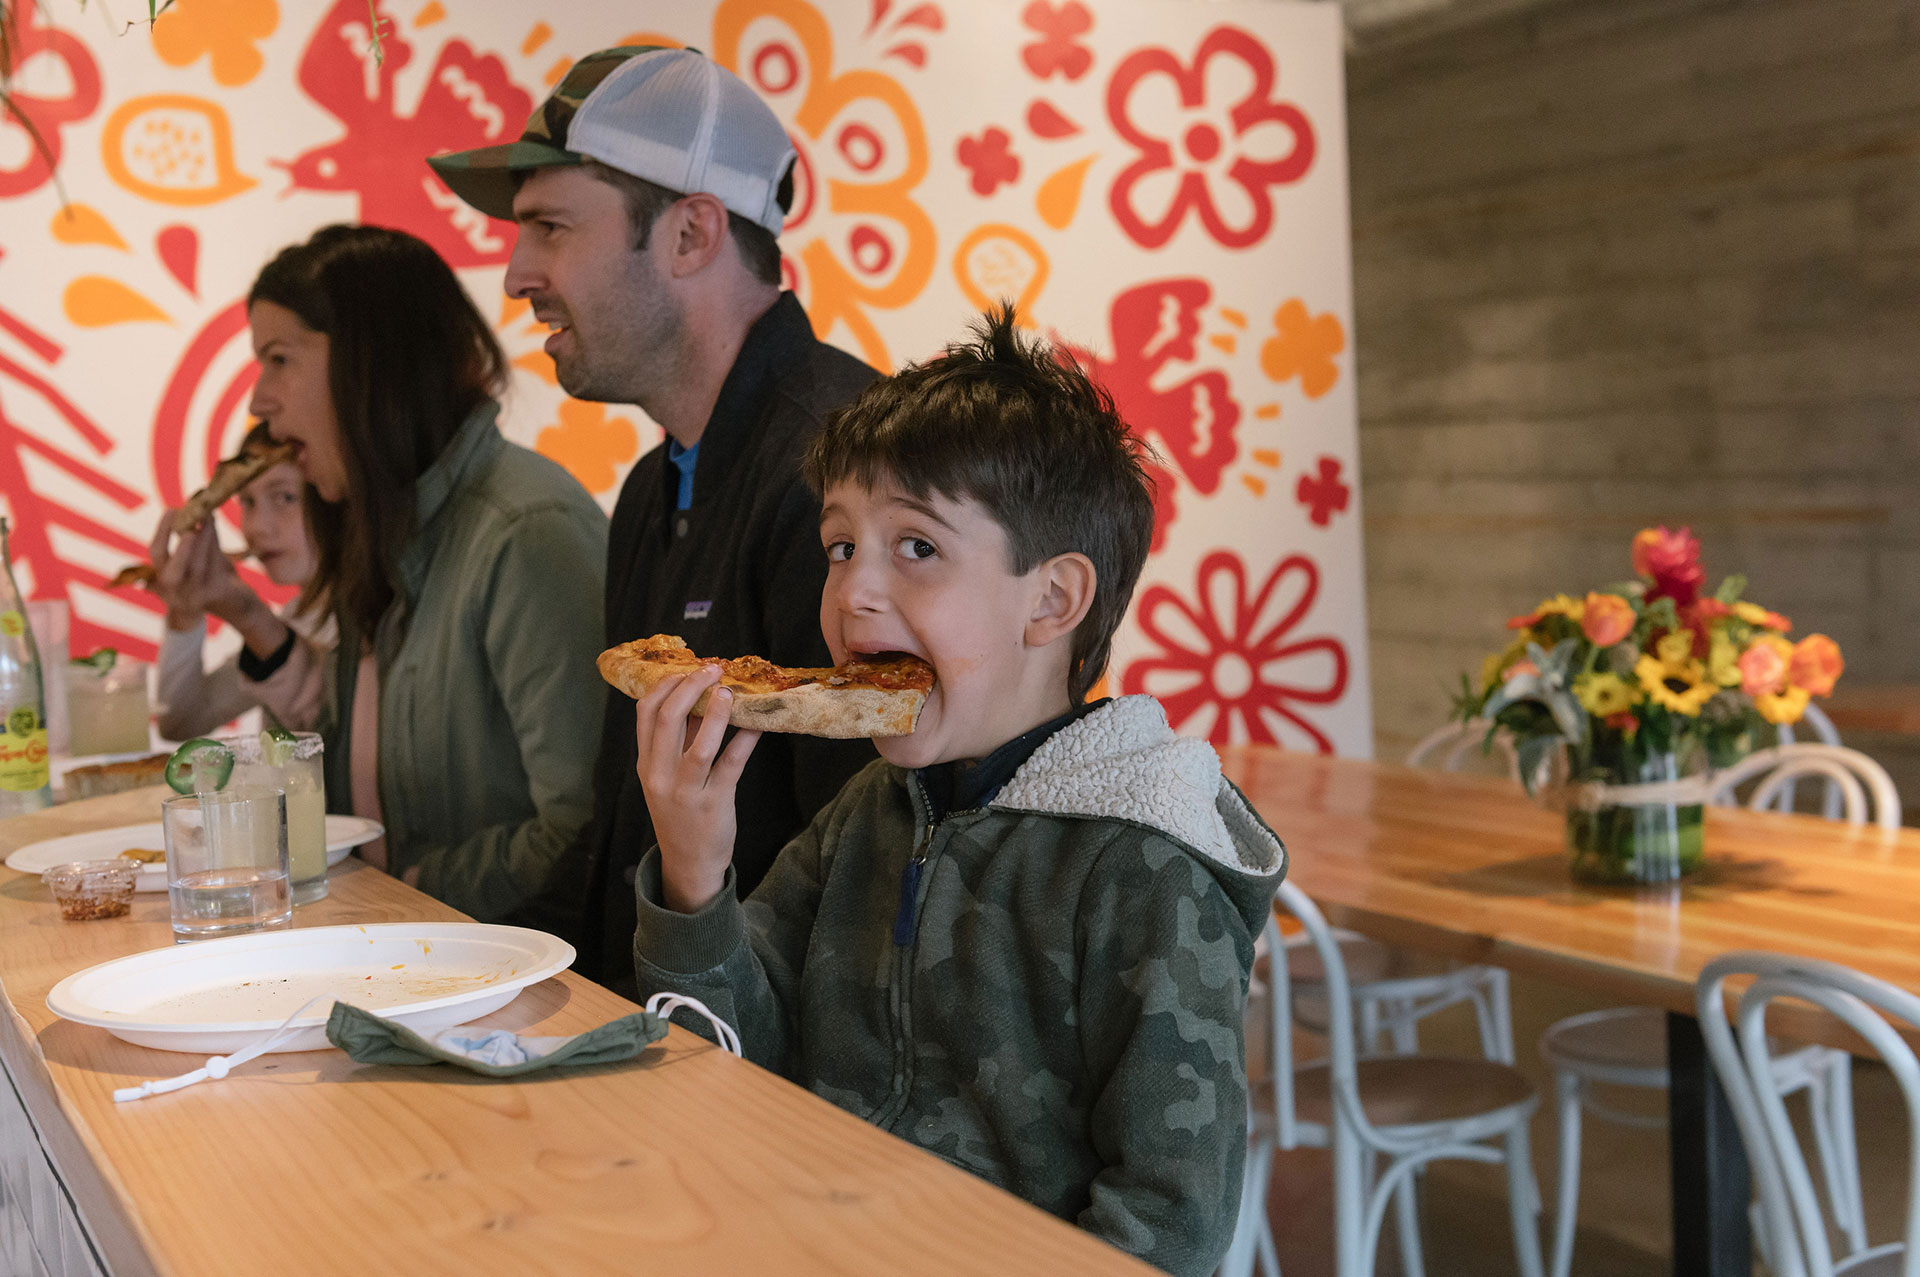 pizza-thief-boy-eating-pizza-slice